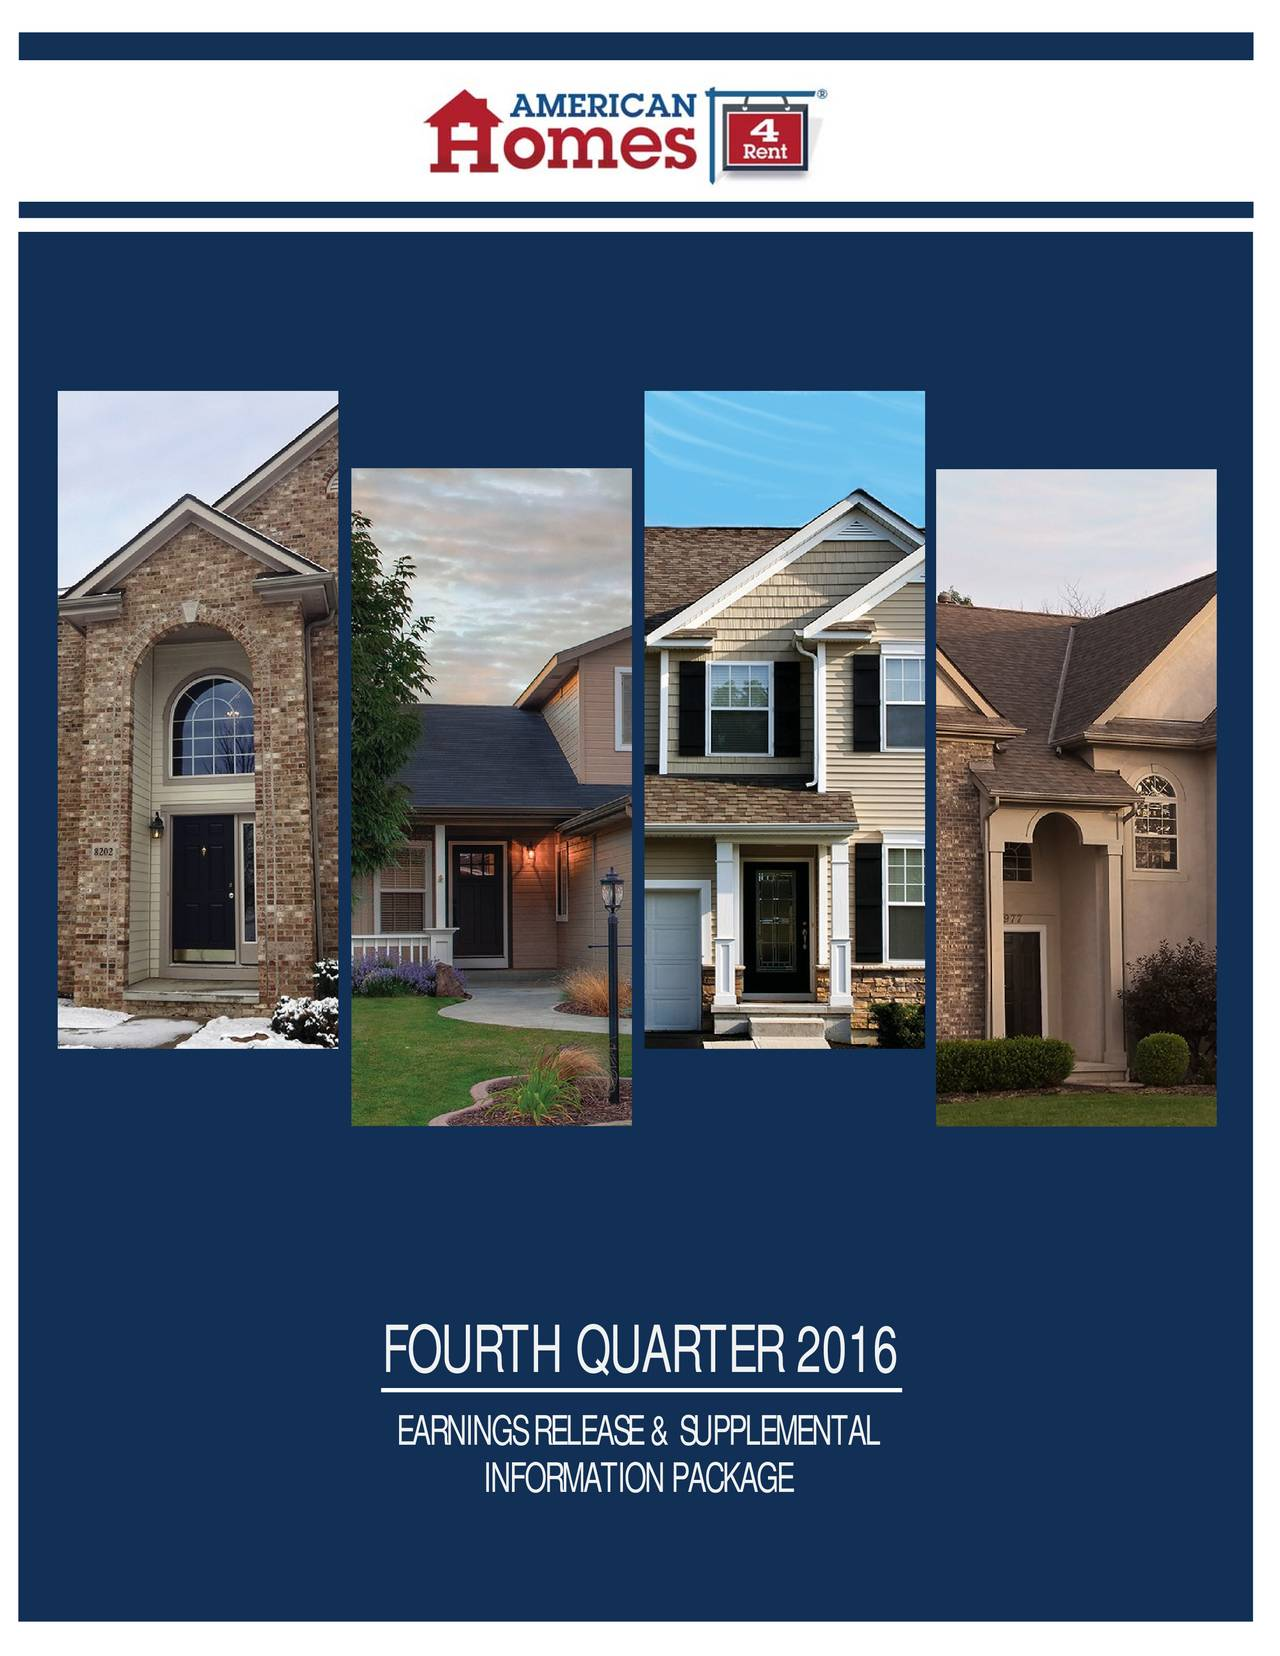 American homes 4 rent 2016 q4 results earnings call for American homes for rent